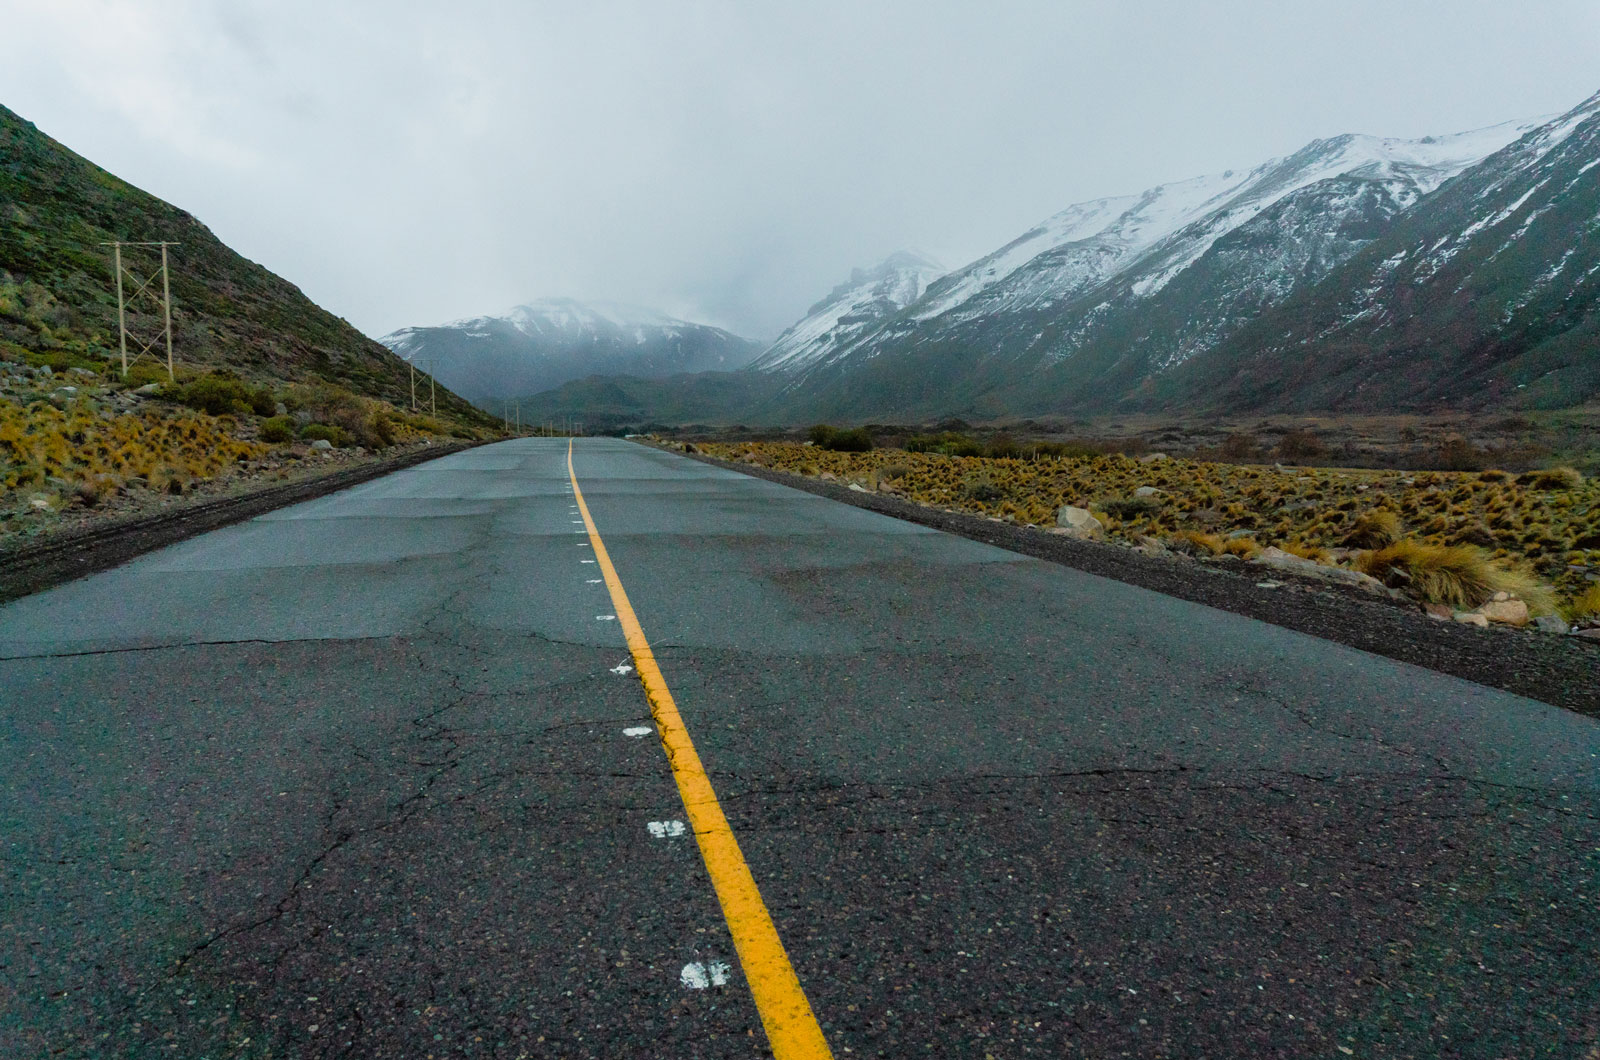 Driving into the storm. Photo Courtesy: Ben Girardi - Adventure in Argentina